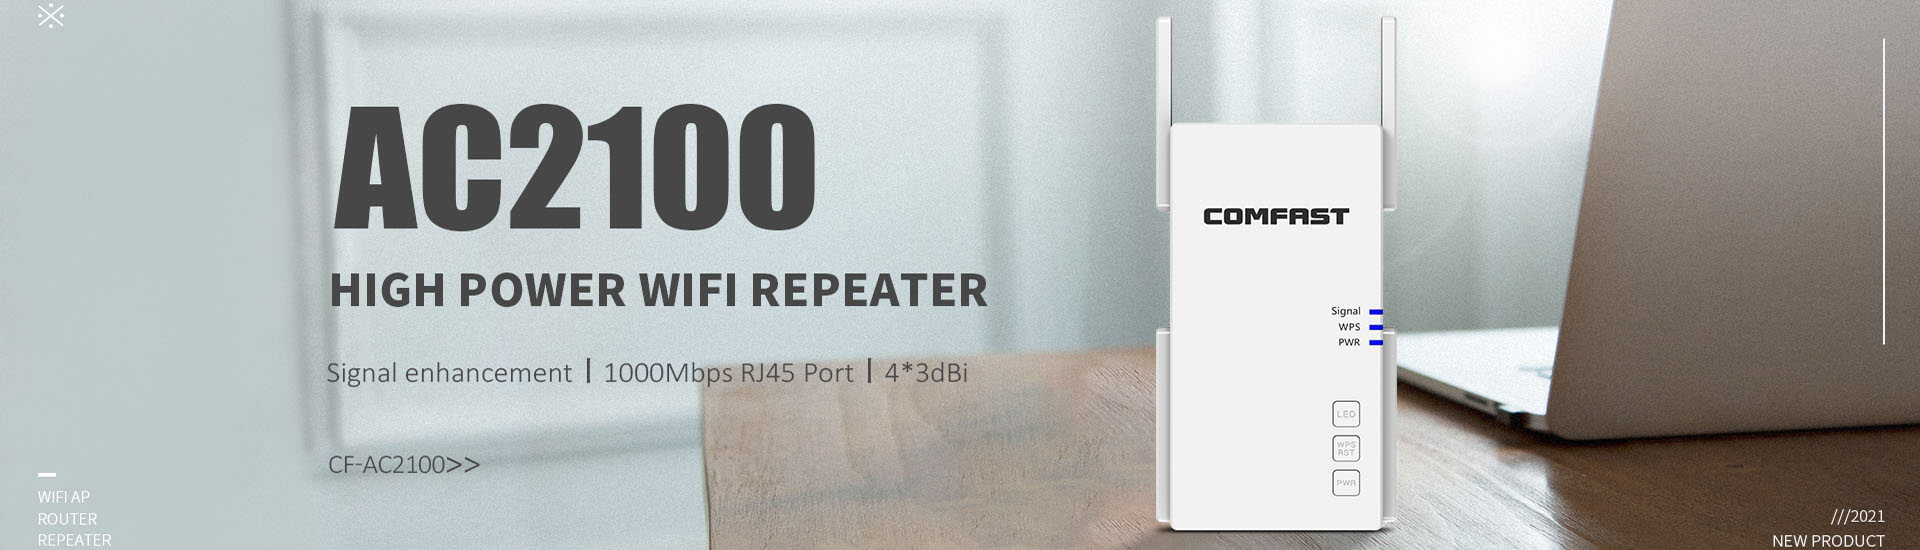 high-power-wifi-repeater